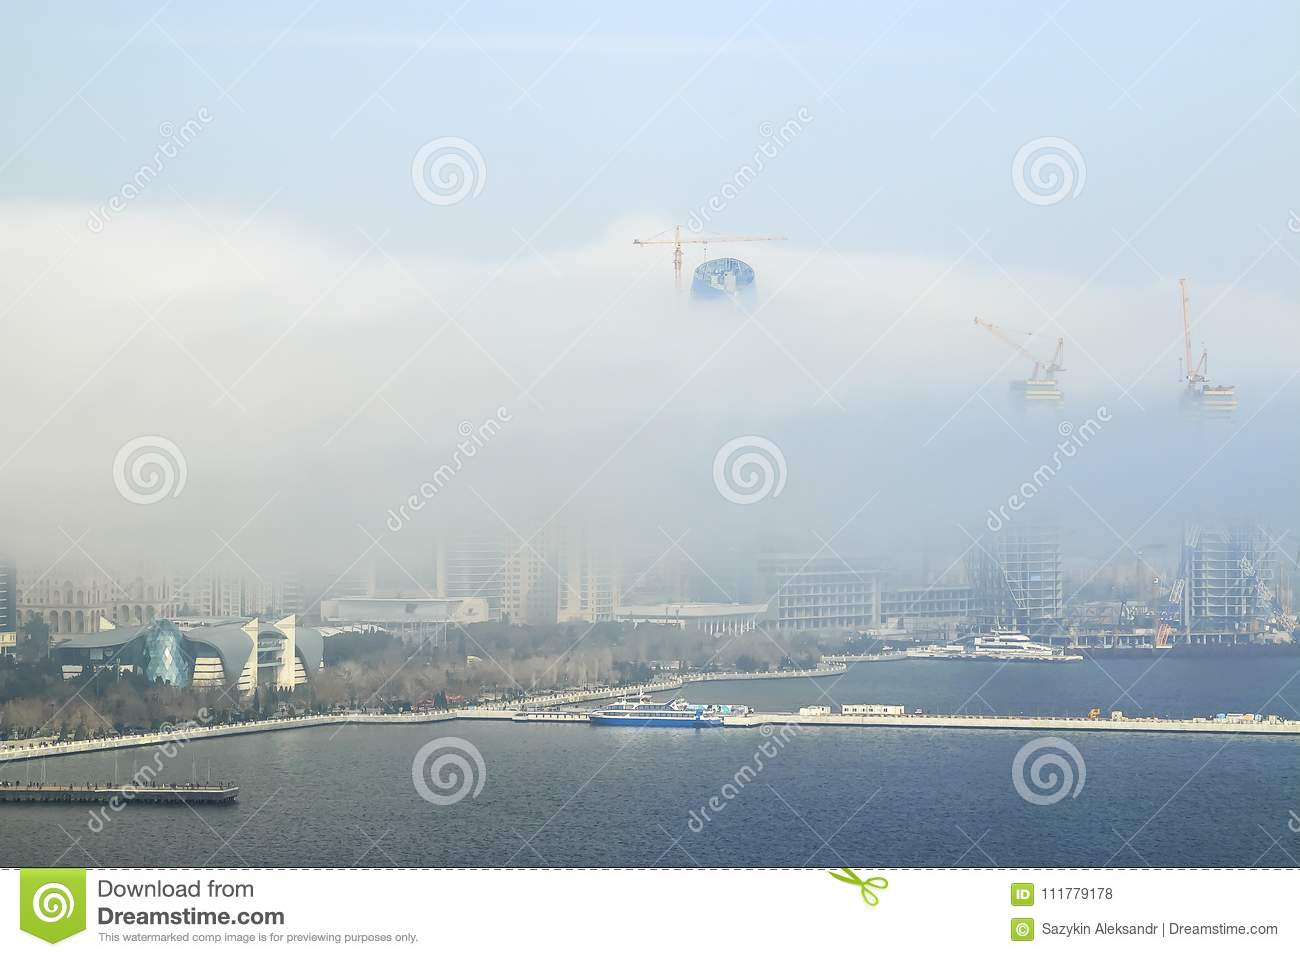 A large white cloud fell on the city and closed the view of the building. Foggy cloud moves from the sea to the city.